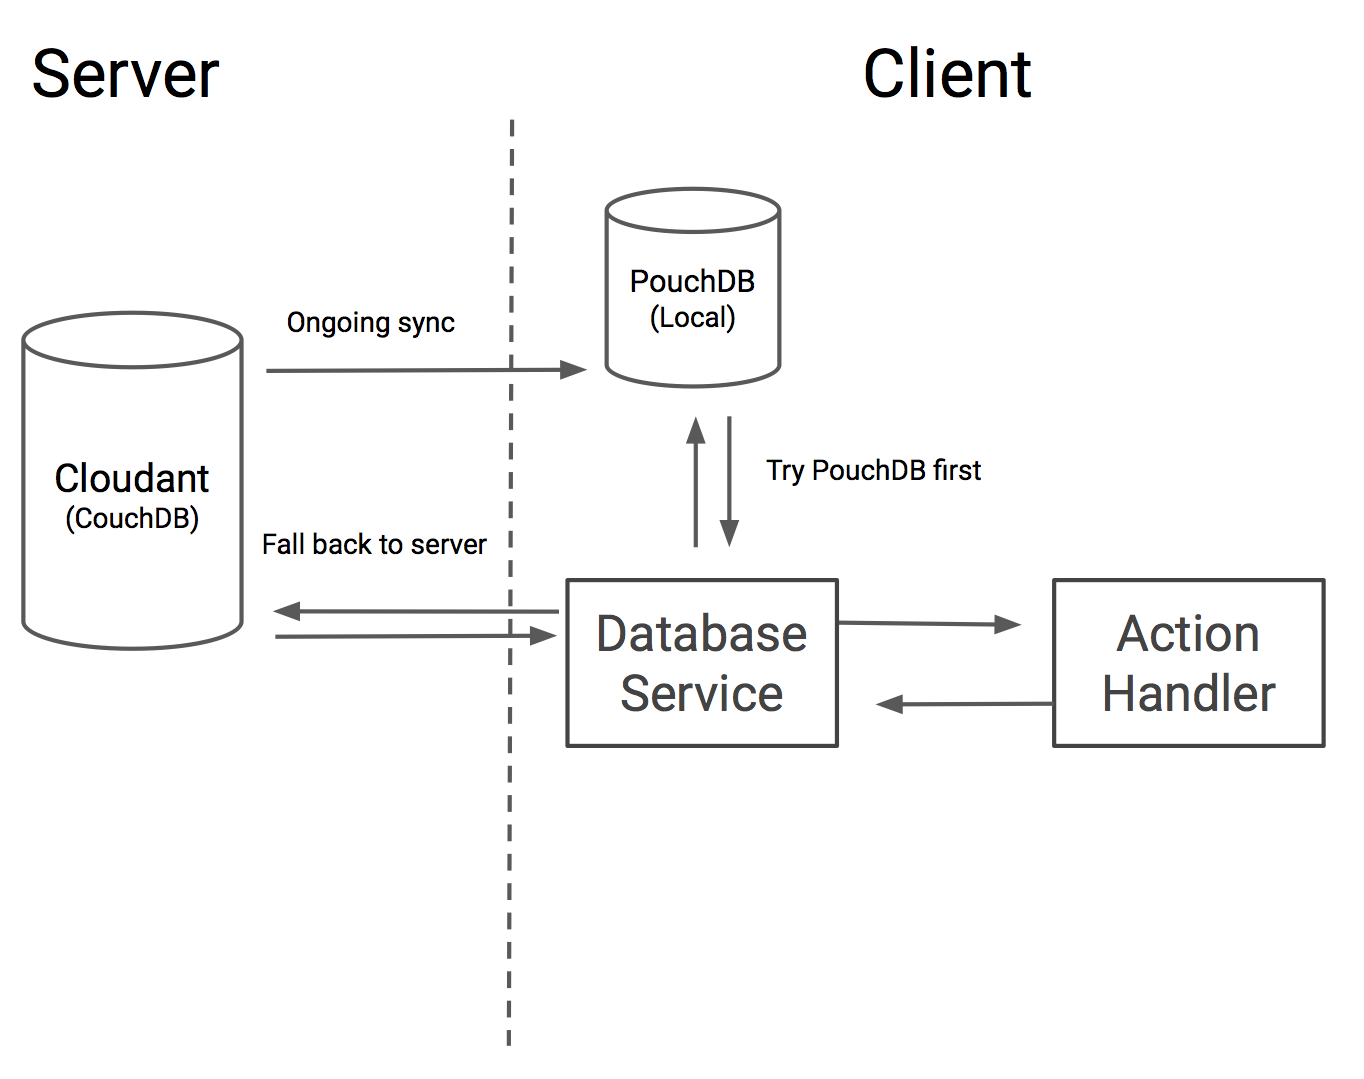 Diagram showing an offline-first architecture where we try a local PouchDB first and fall back to the network, and PouchDB continually syncs with Cloudant